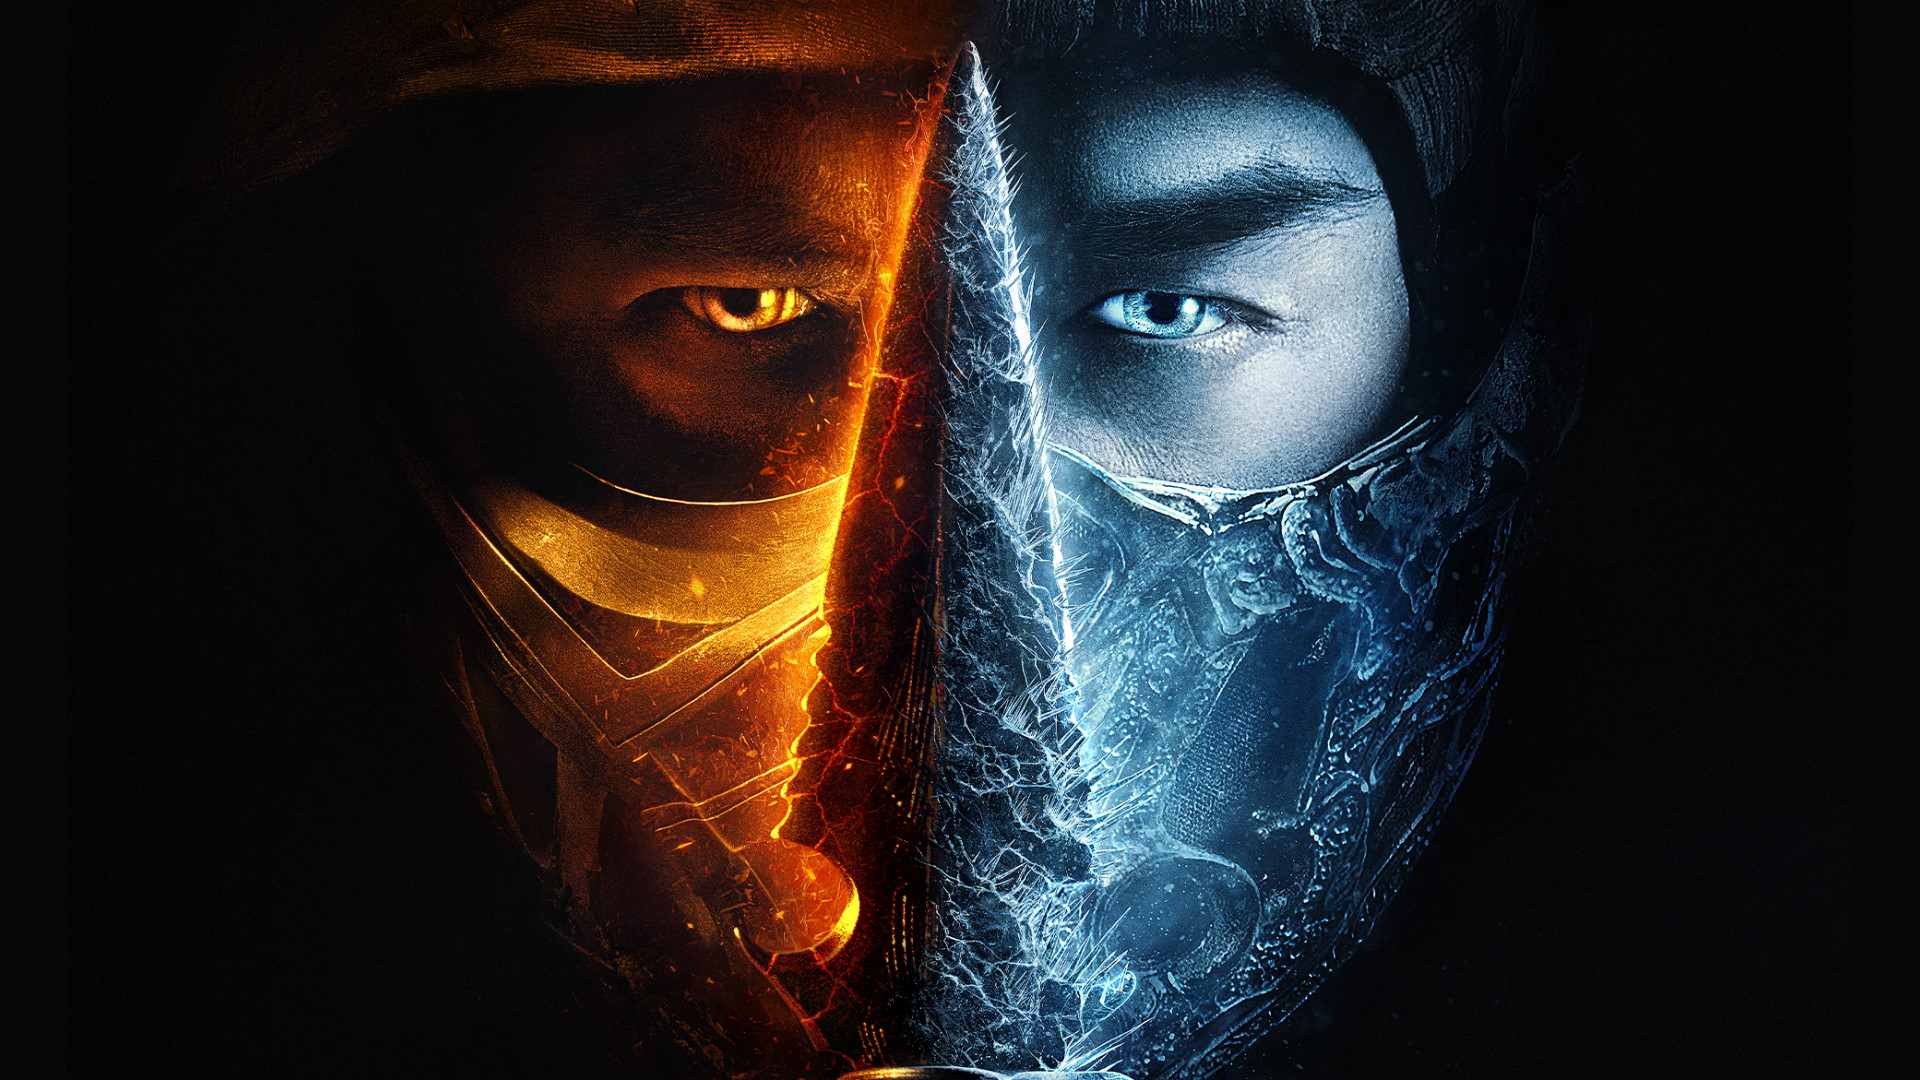 The Mortal Kombat movie trailer is violent, silly, and lots of fun